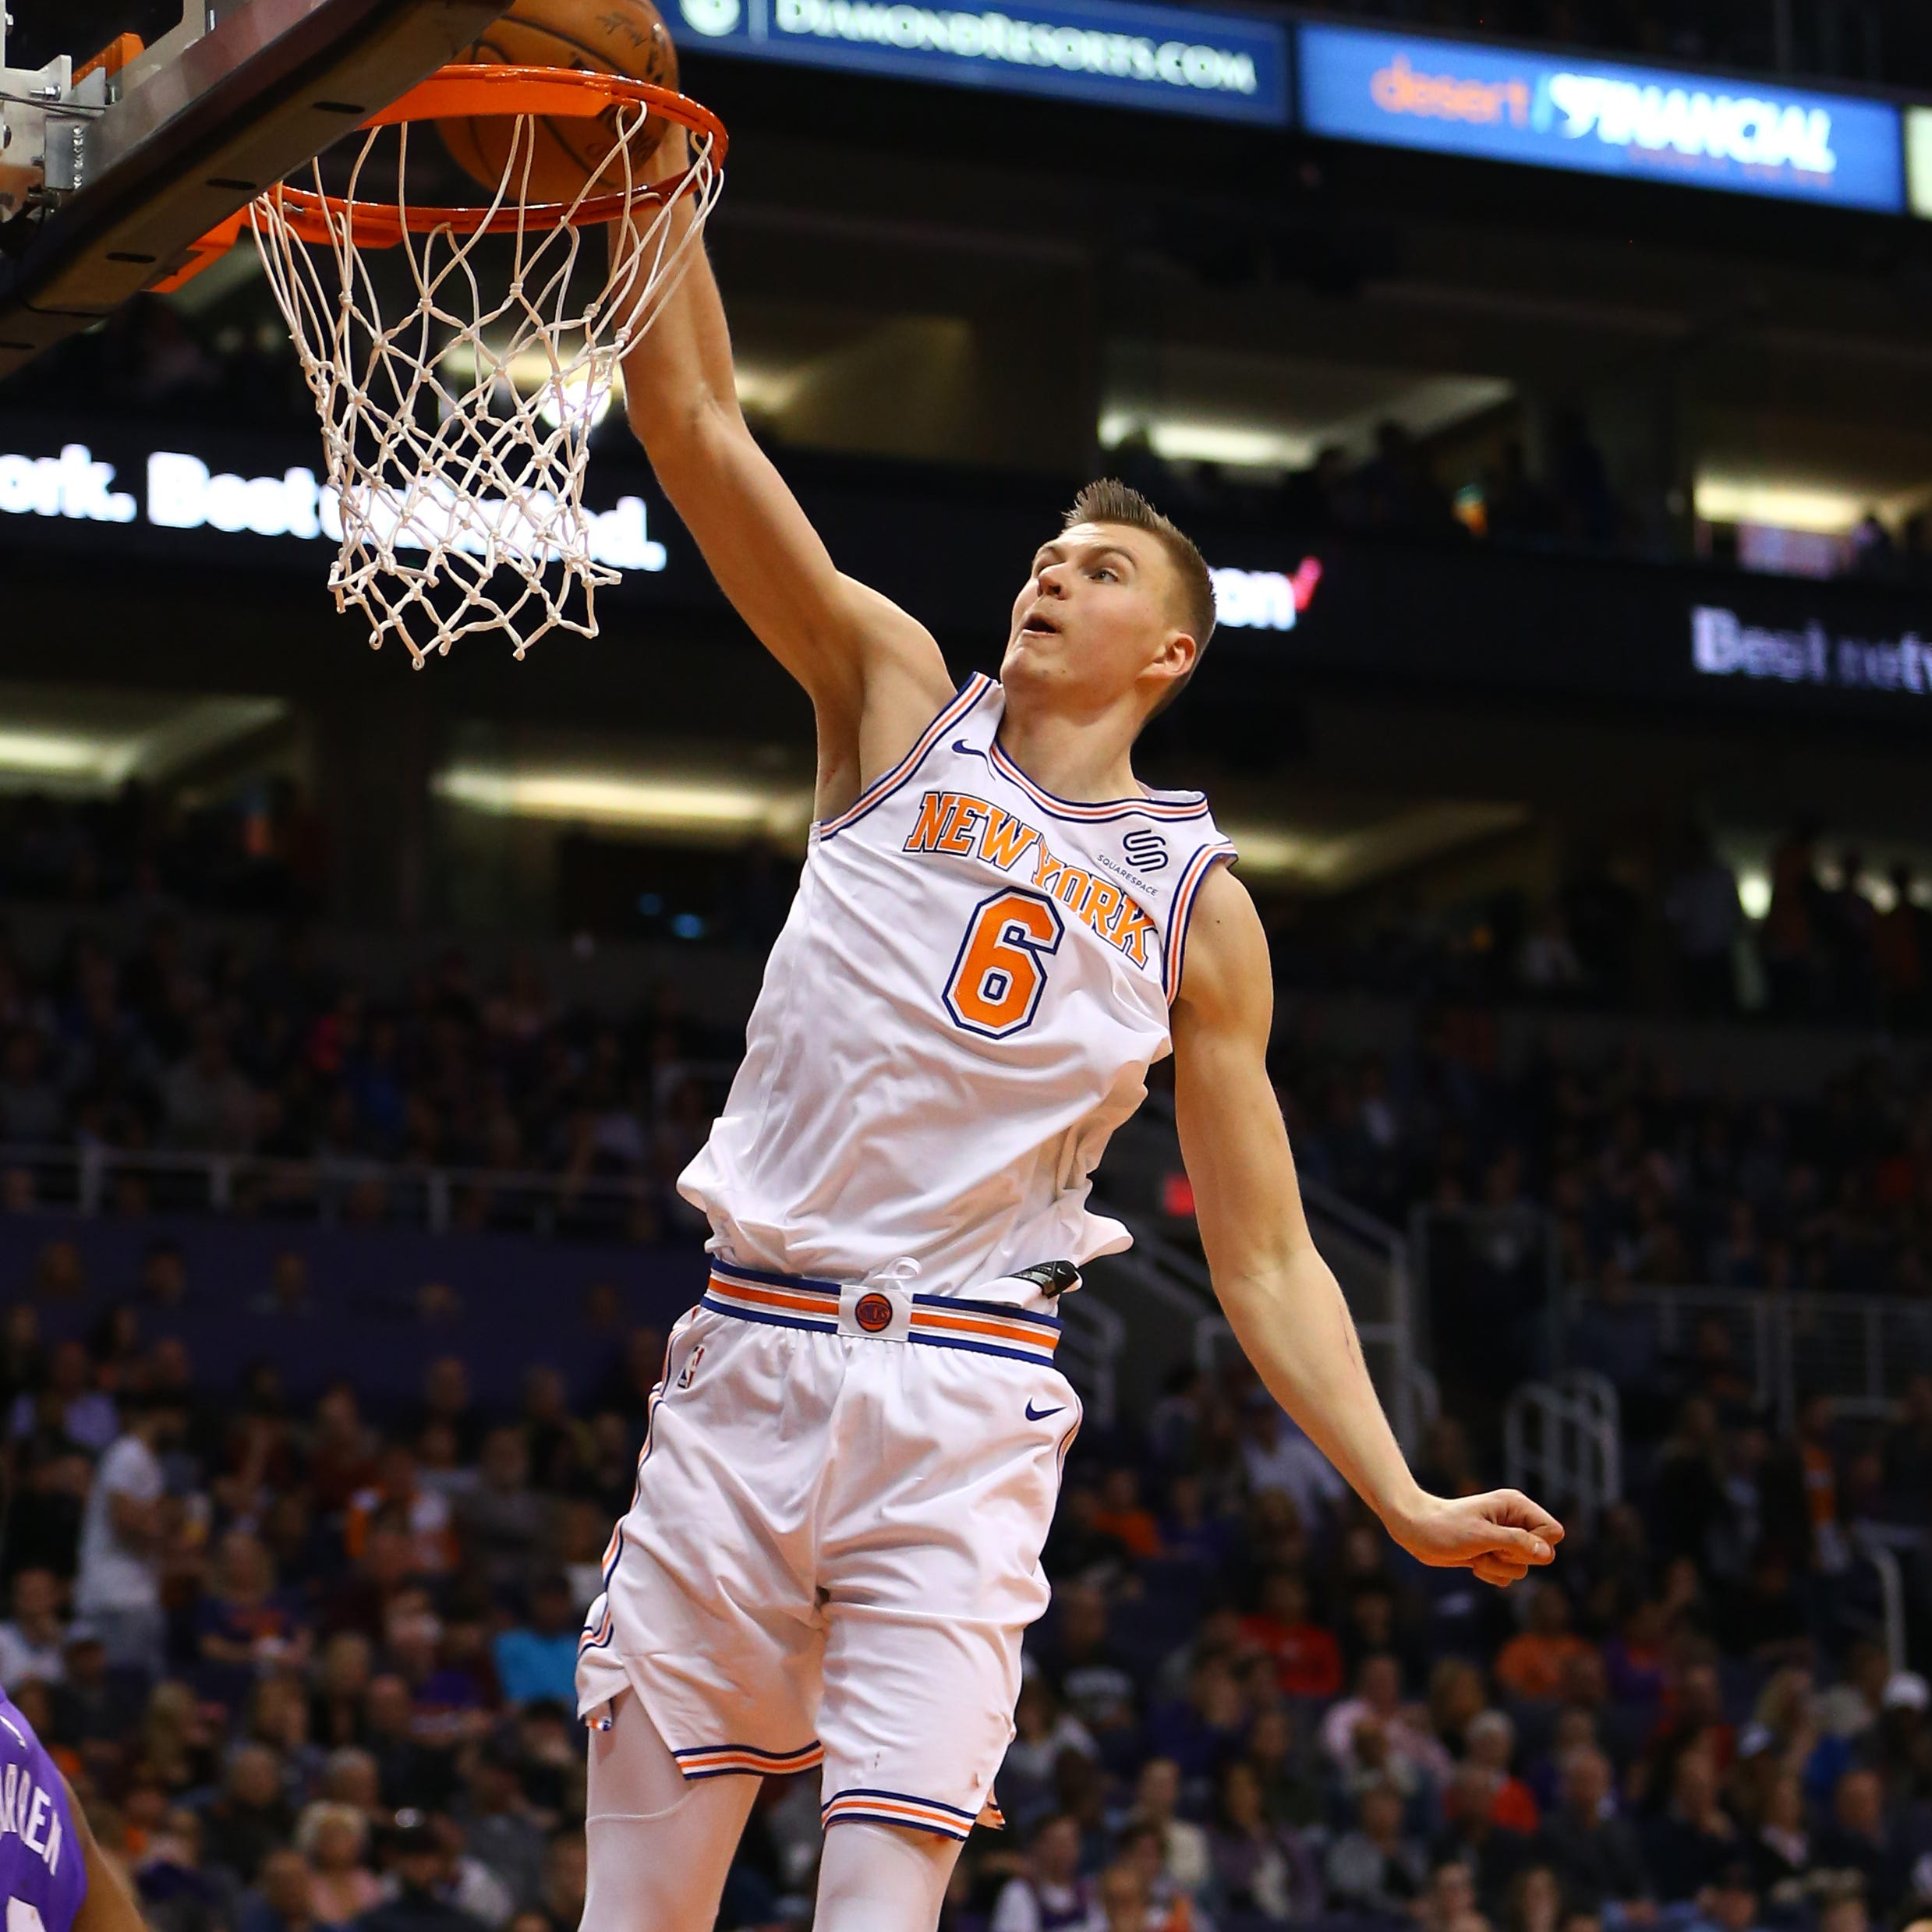 Kristpas Porzingis is headed from the Big Apple to Big D.